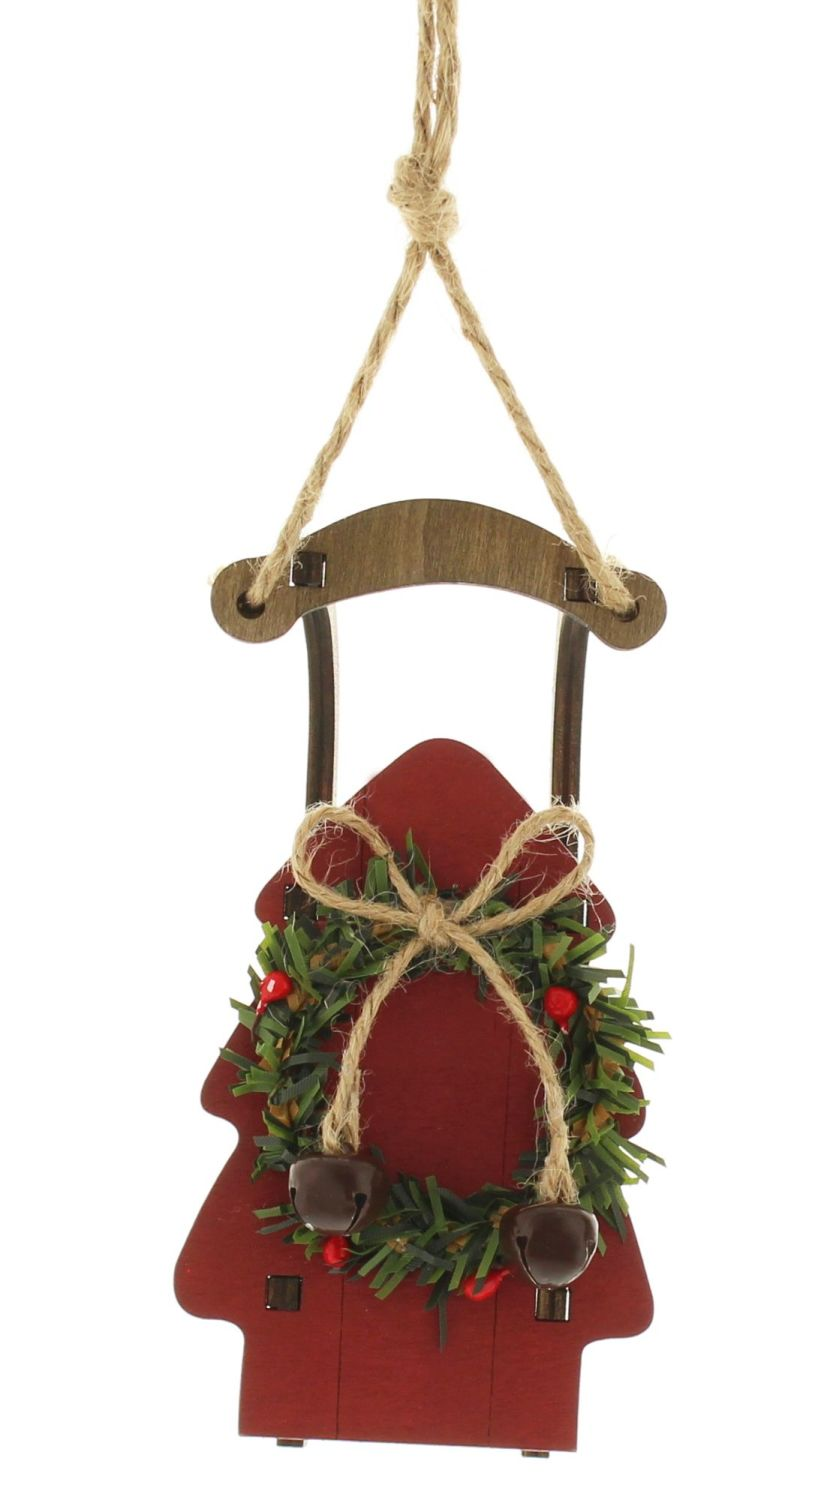 Red Rustic Wooden Sleigh Hanging Bauble with Wreath and a Christmas Bell -